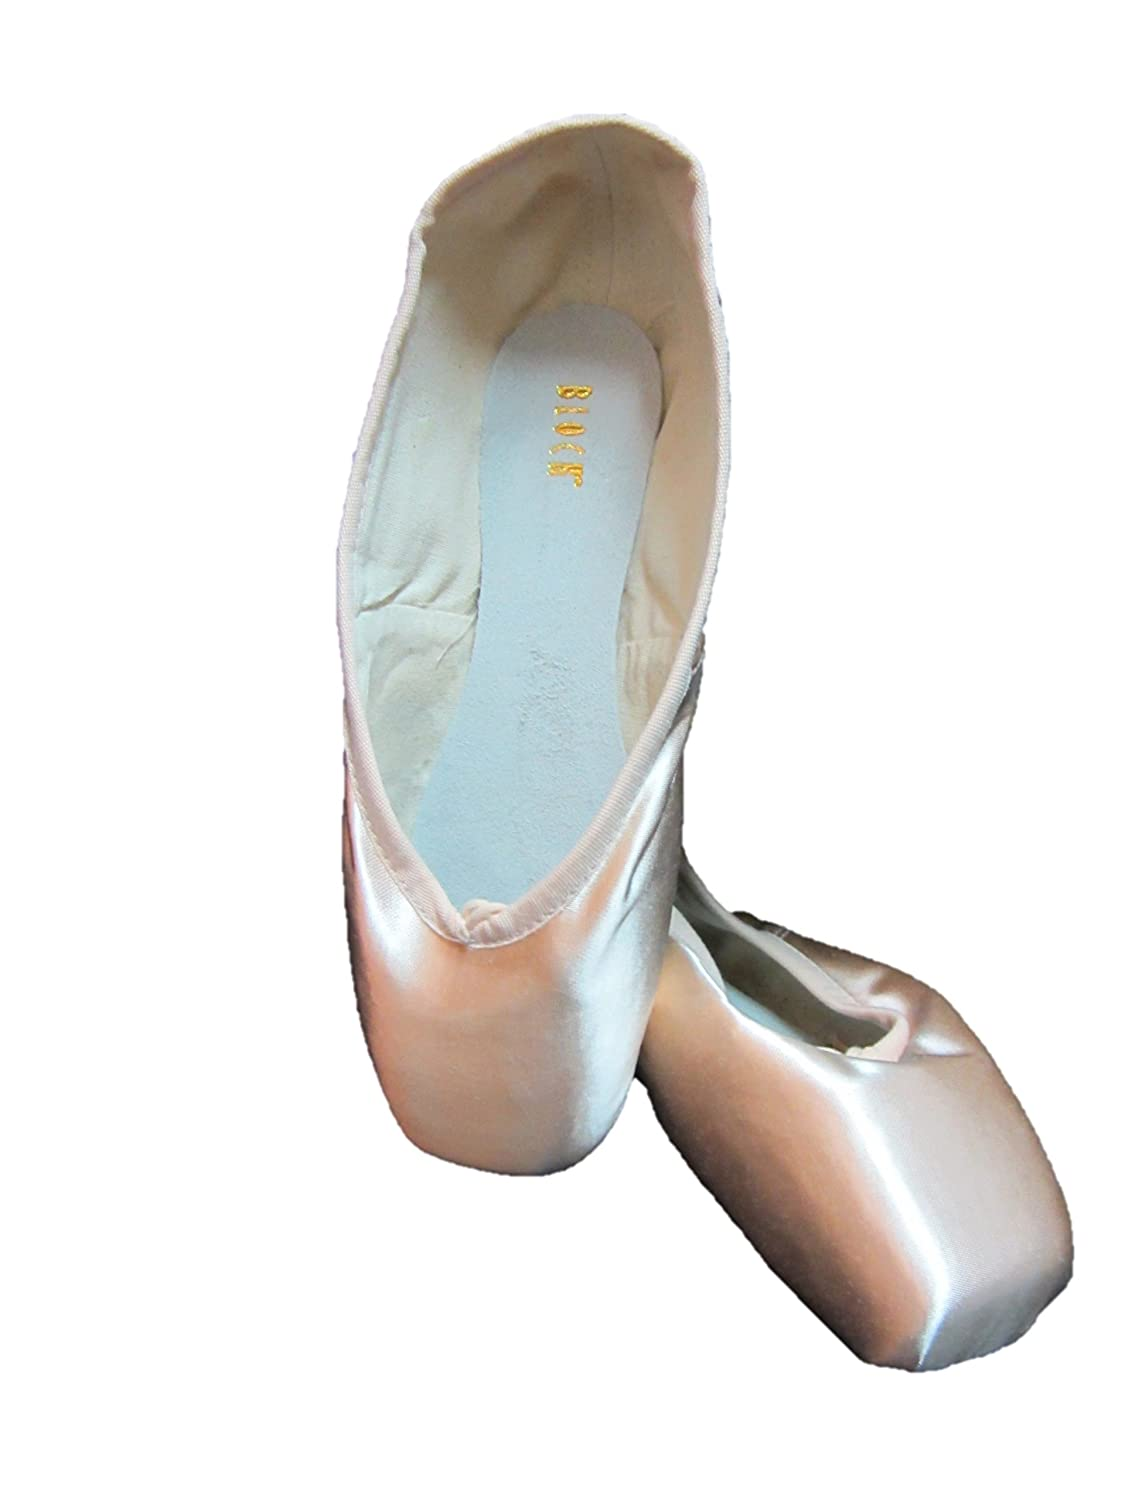 131 serenade bloch pointe shoes